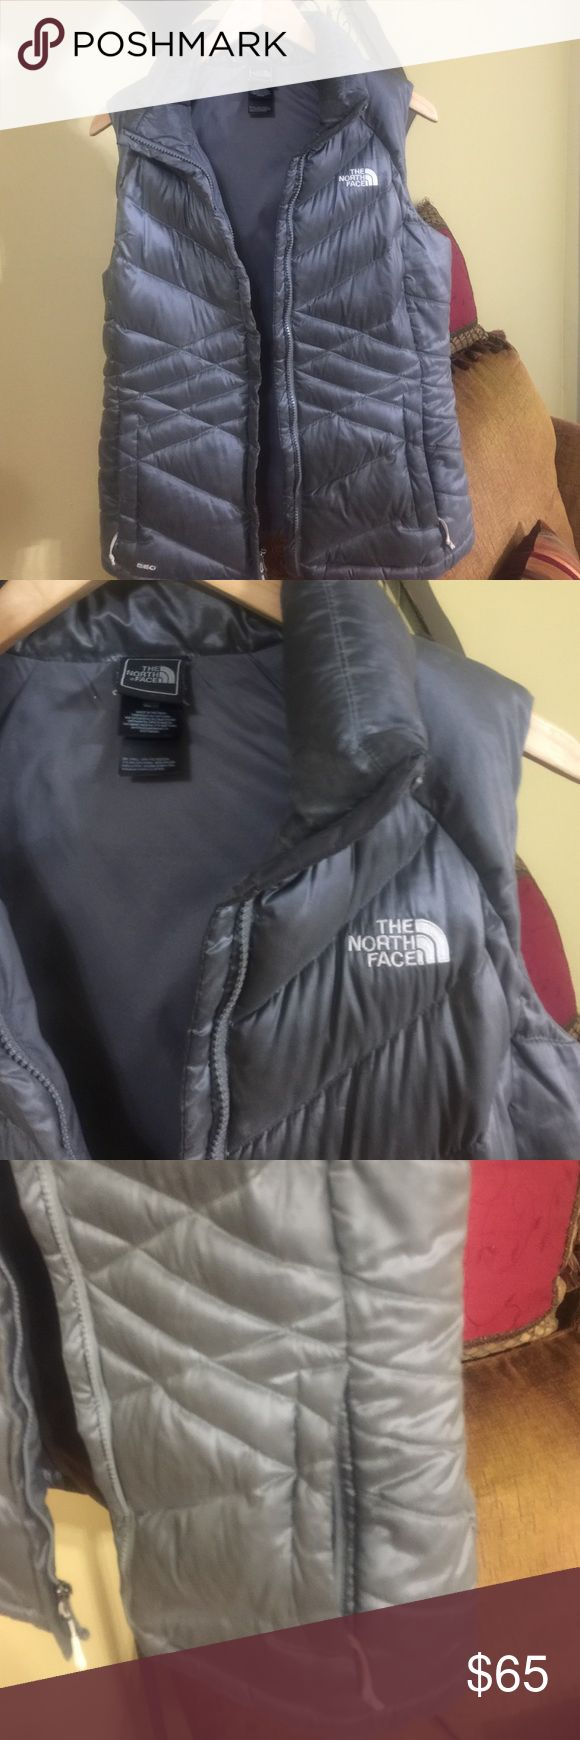 North face down west silver medium with zipper North face down west silver ! Size medium . Good condition and no damage . Has zipper and 2 side pockets . I love this jacket , but silver is not my favorite color . Can be dry clean or wash in washing machine in gentle cycle. North Face Jackets & Coats Puffers